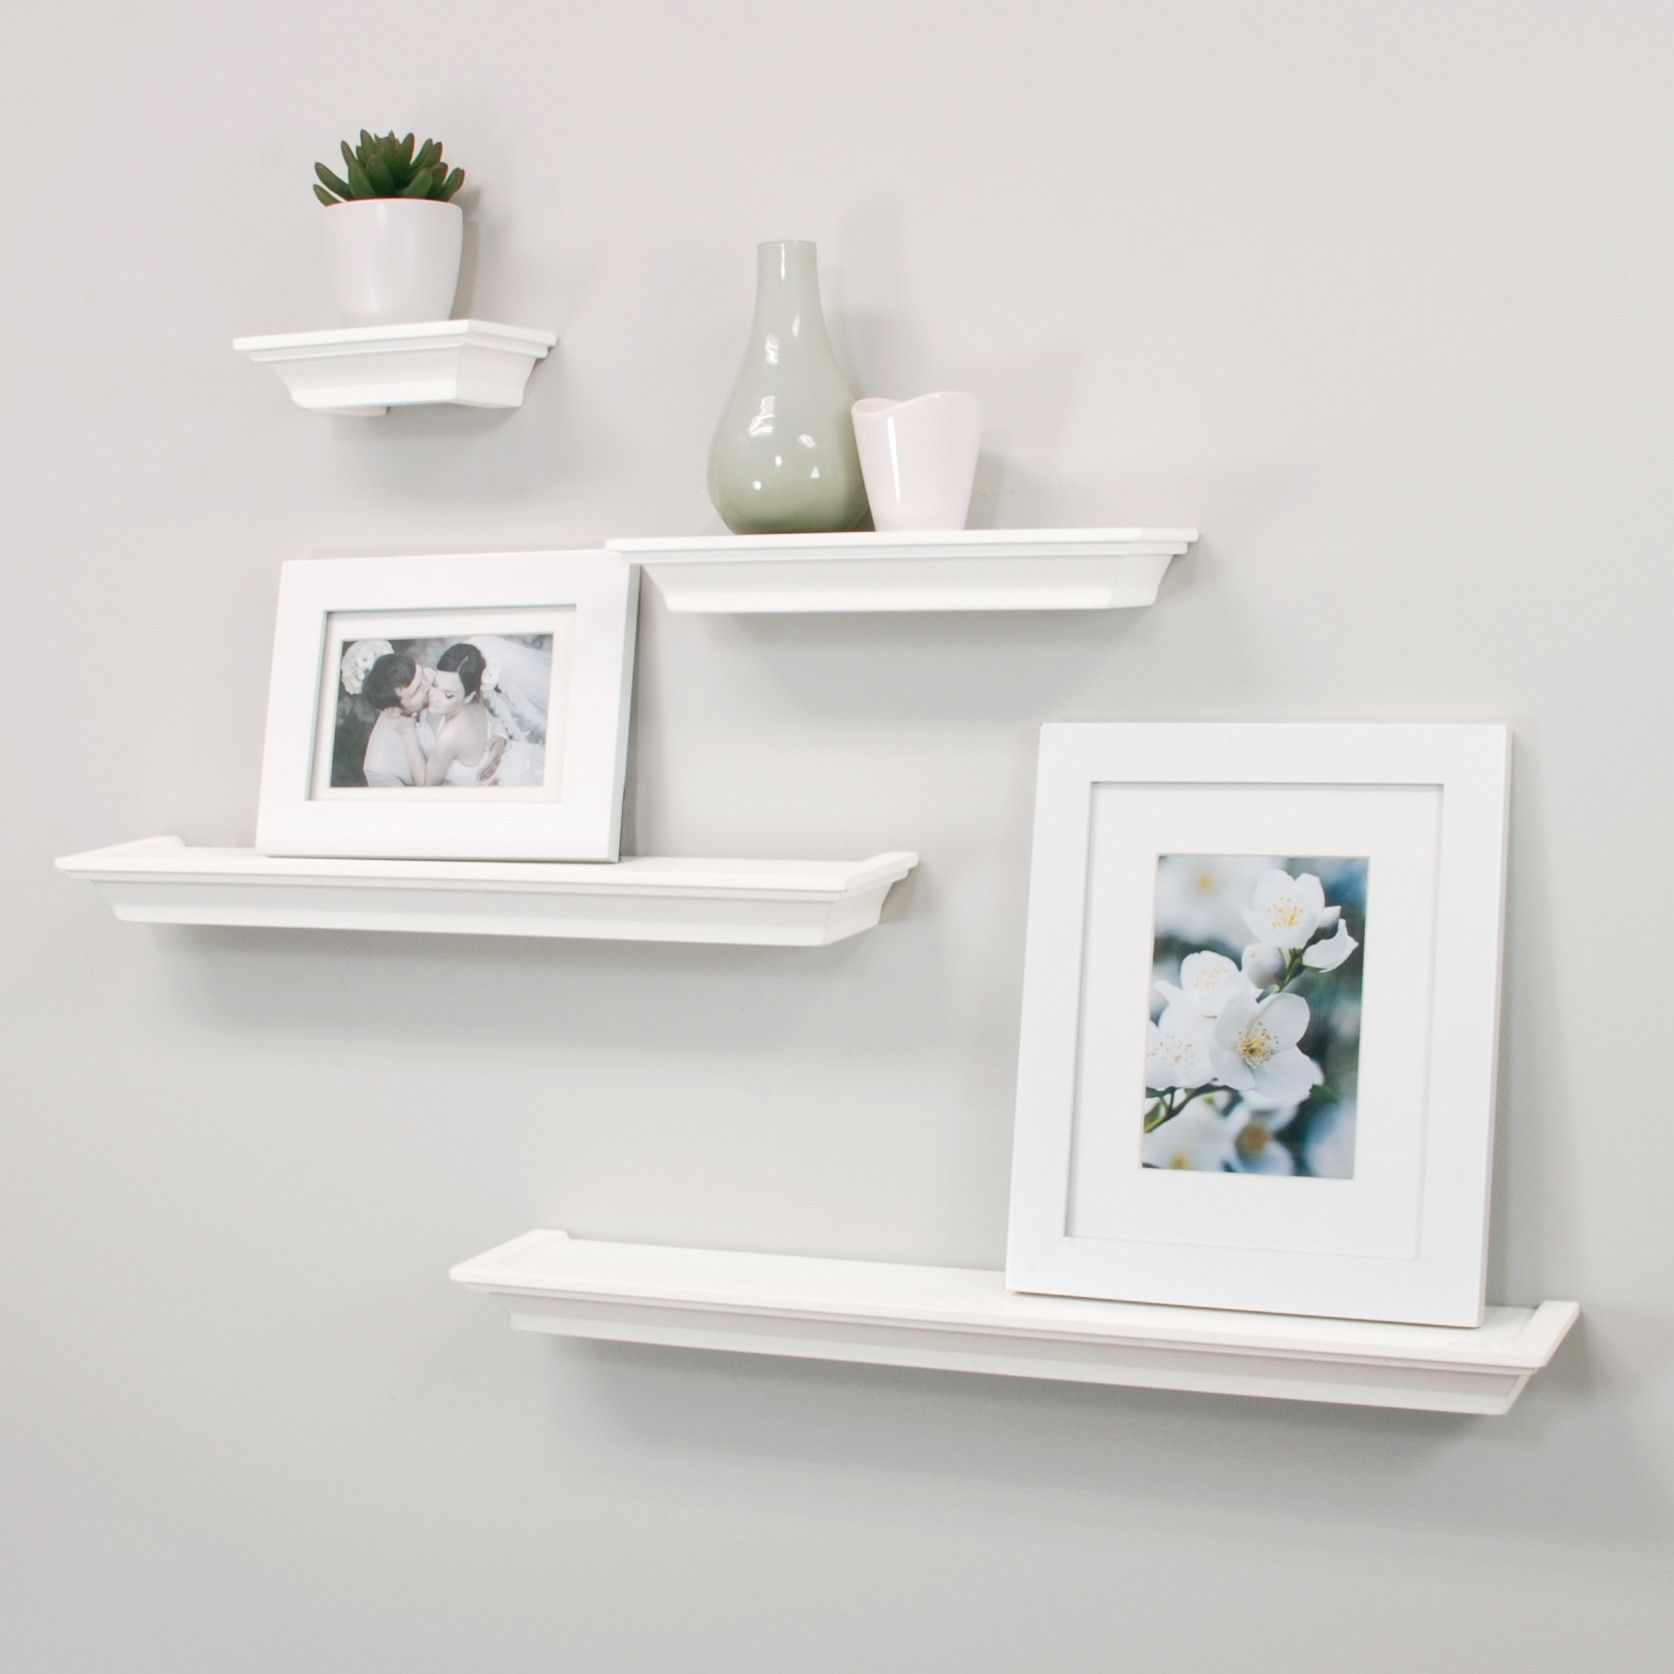 Melannco Floating Shelves Impressive Features Set Of Four Contoured Ledge Style Shelvingvarious 2018